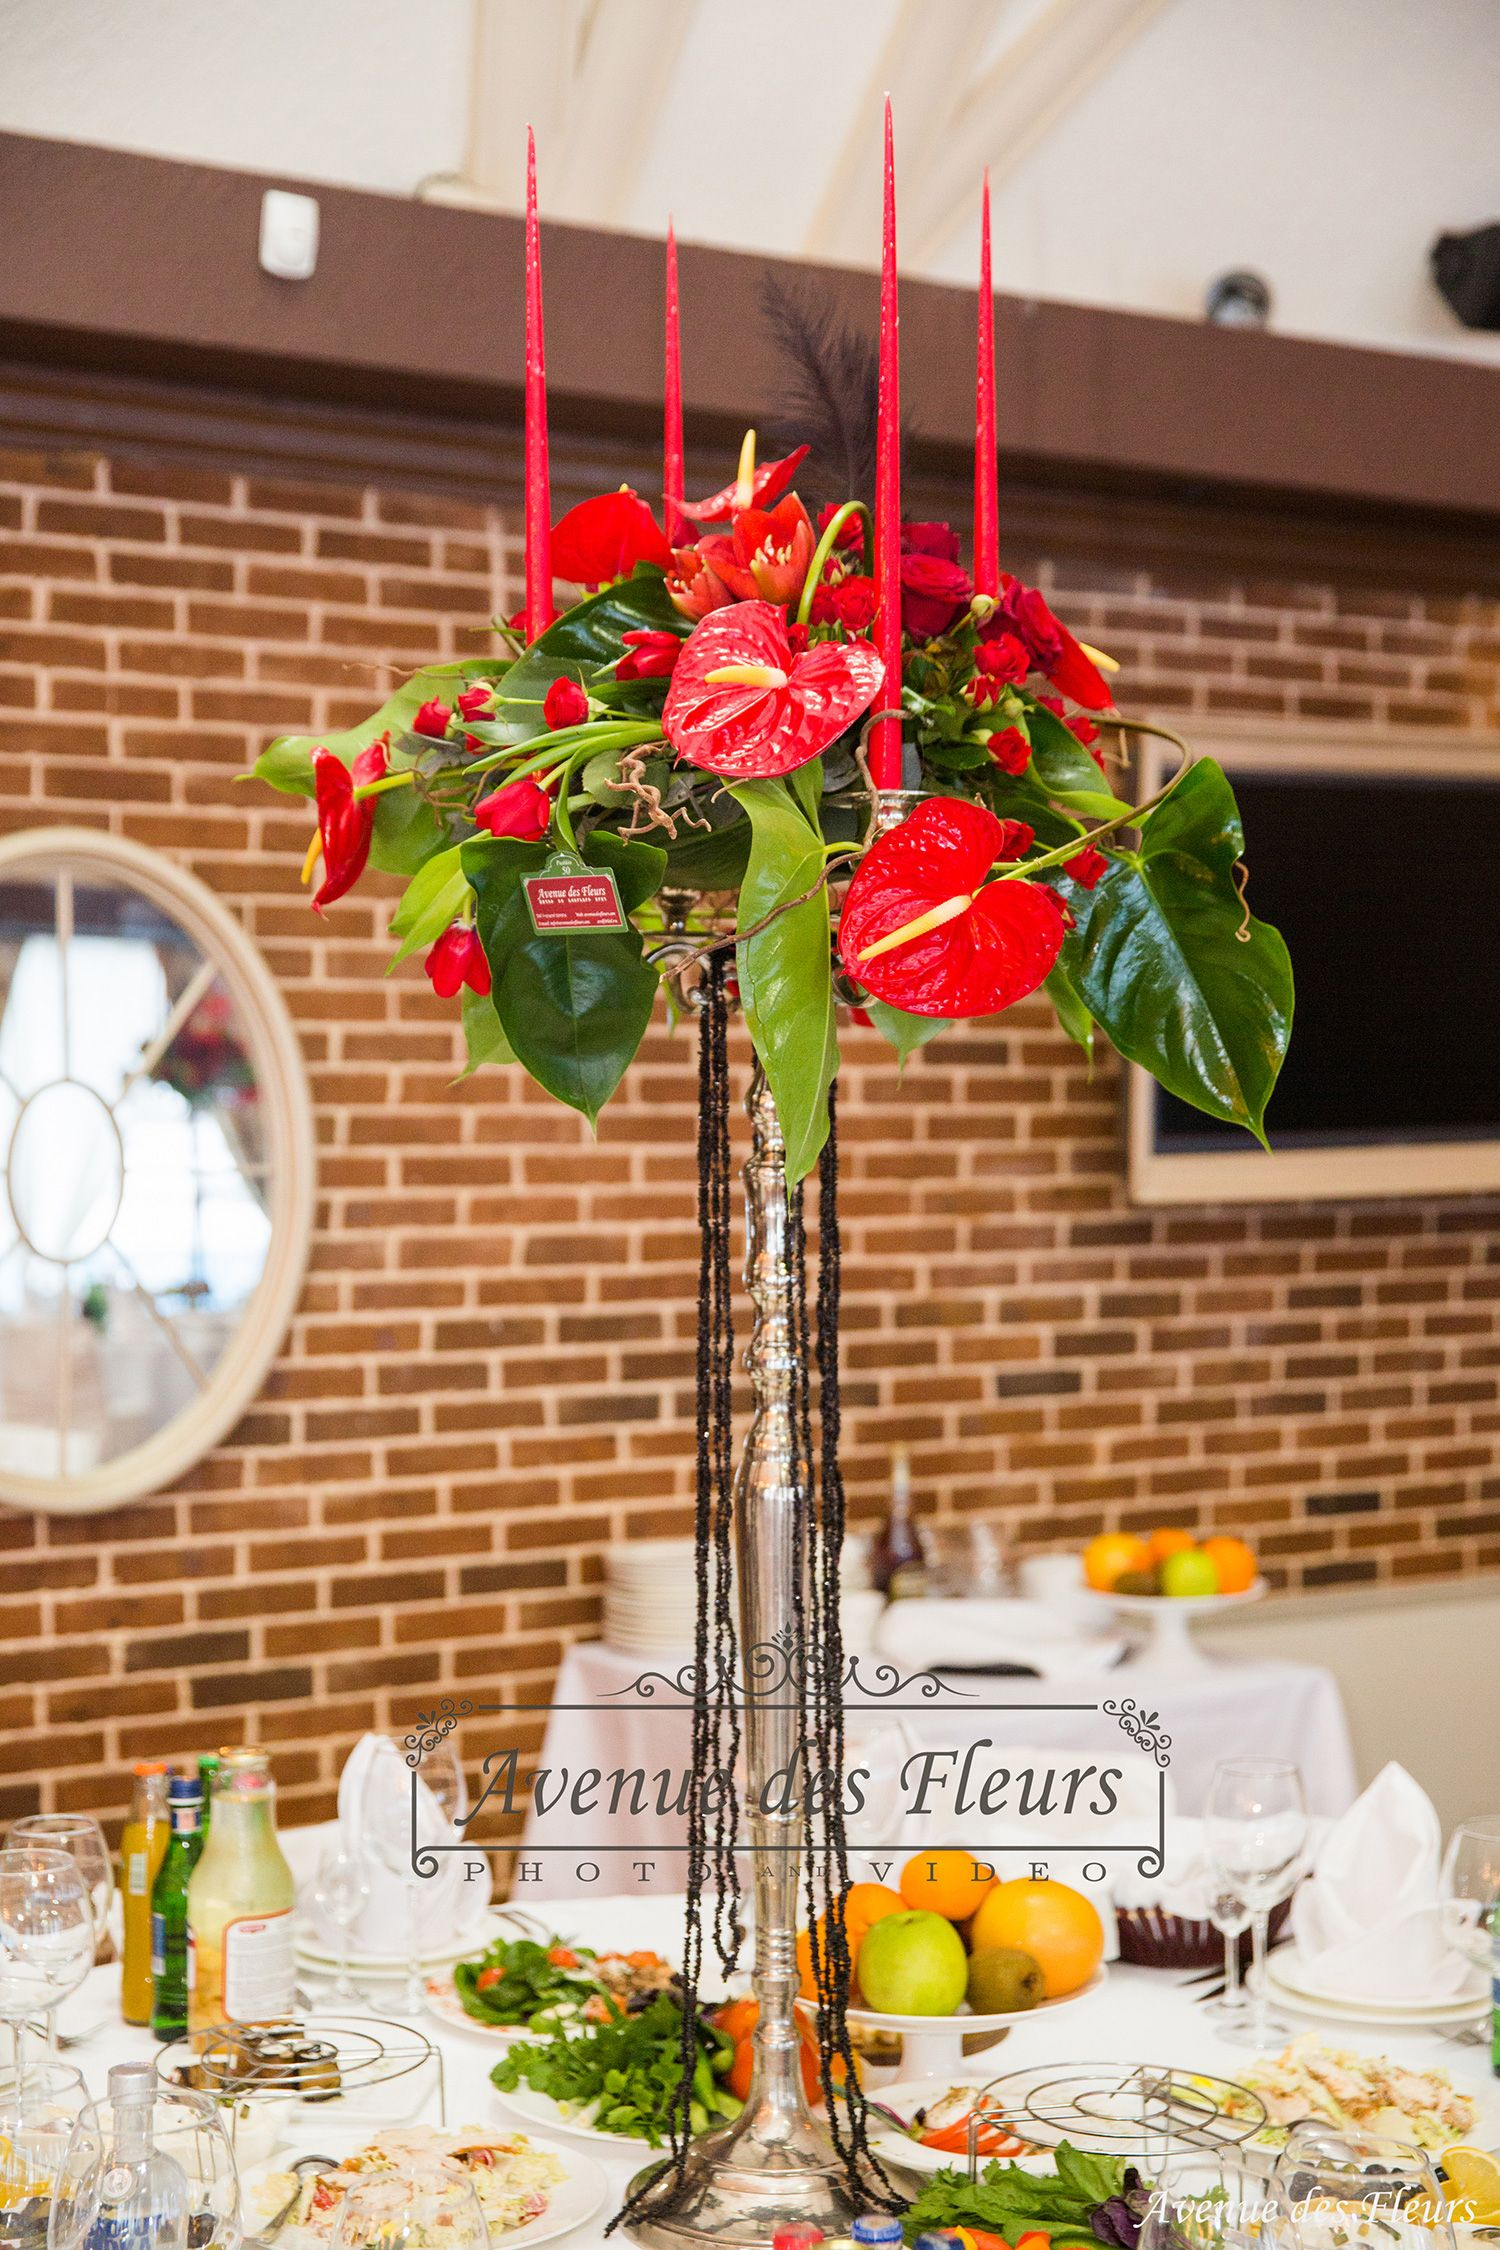 Red Centerpiece Event Table Arrangement Red Wedding Centerpiece @Avenuedesfleurs Www